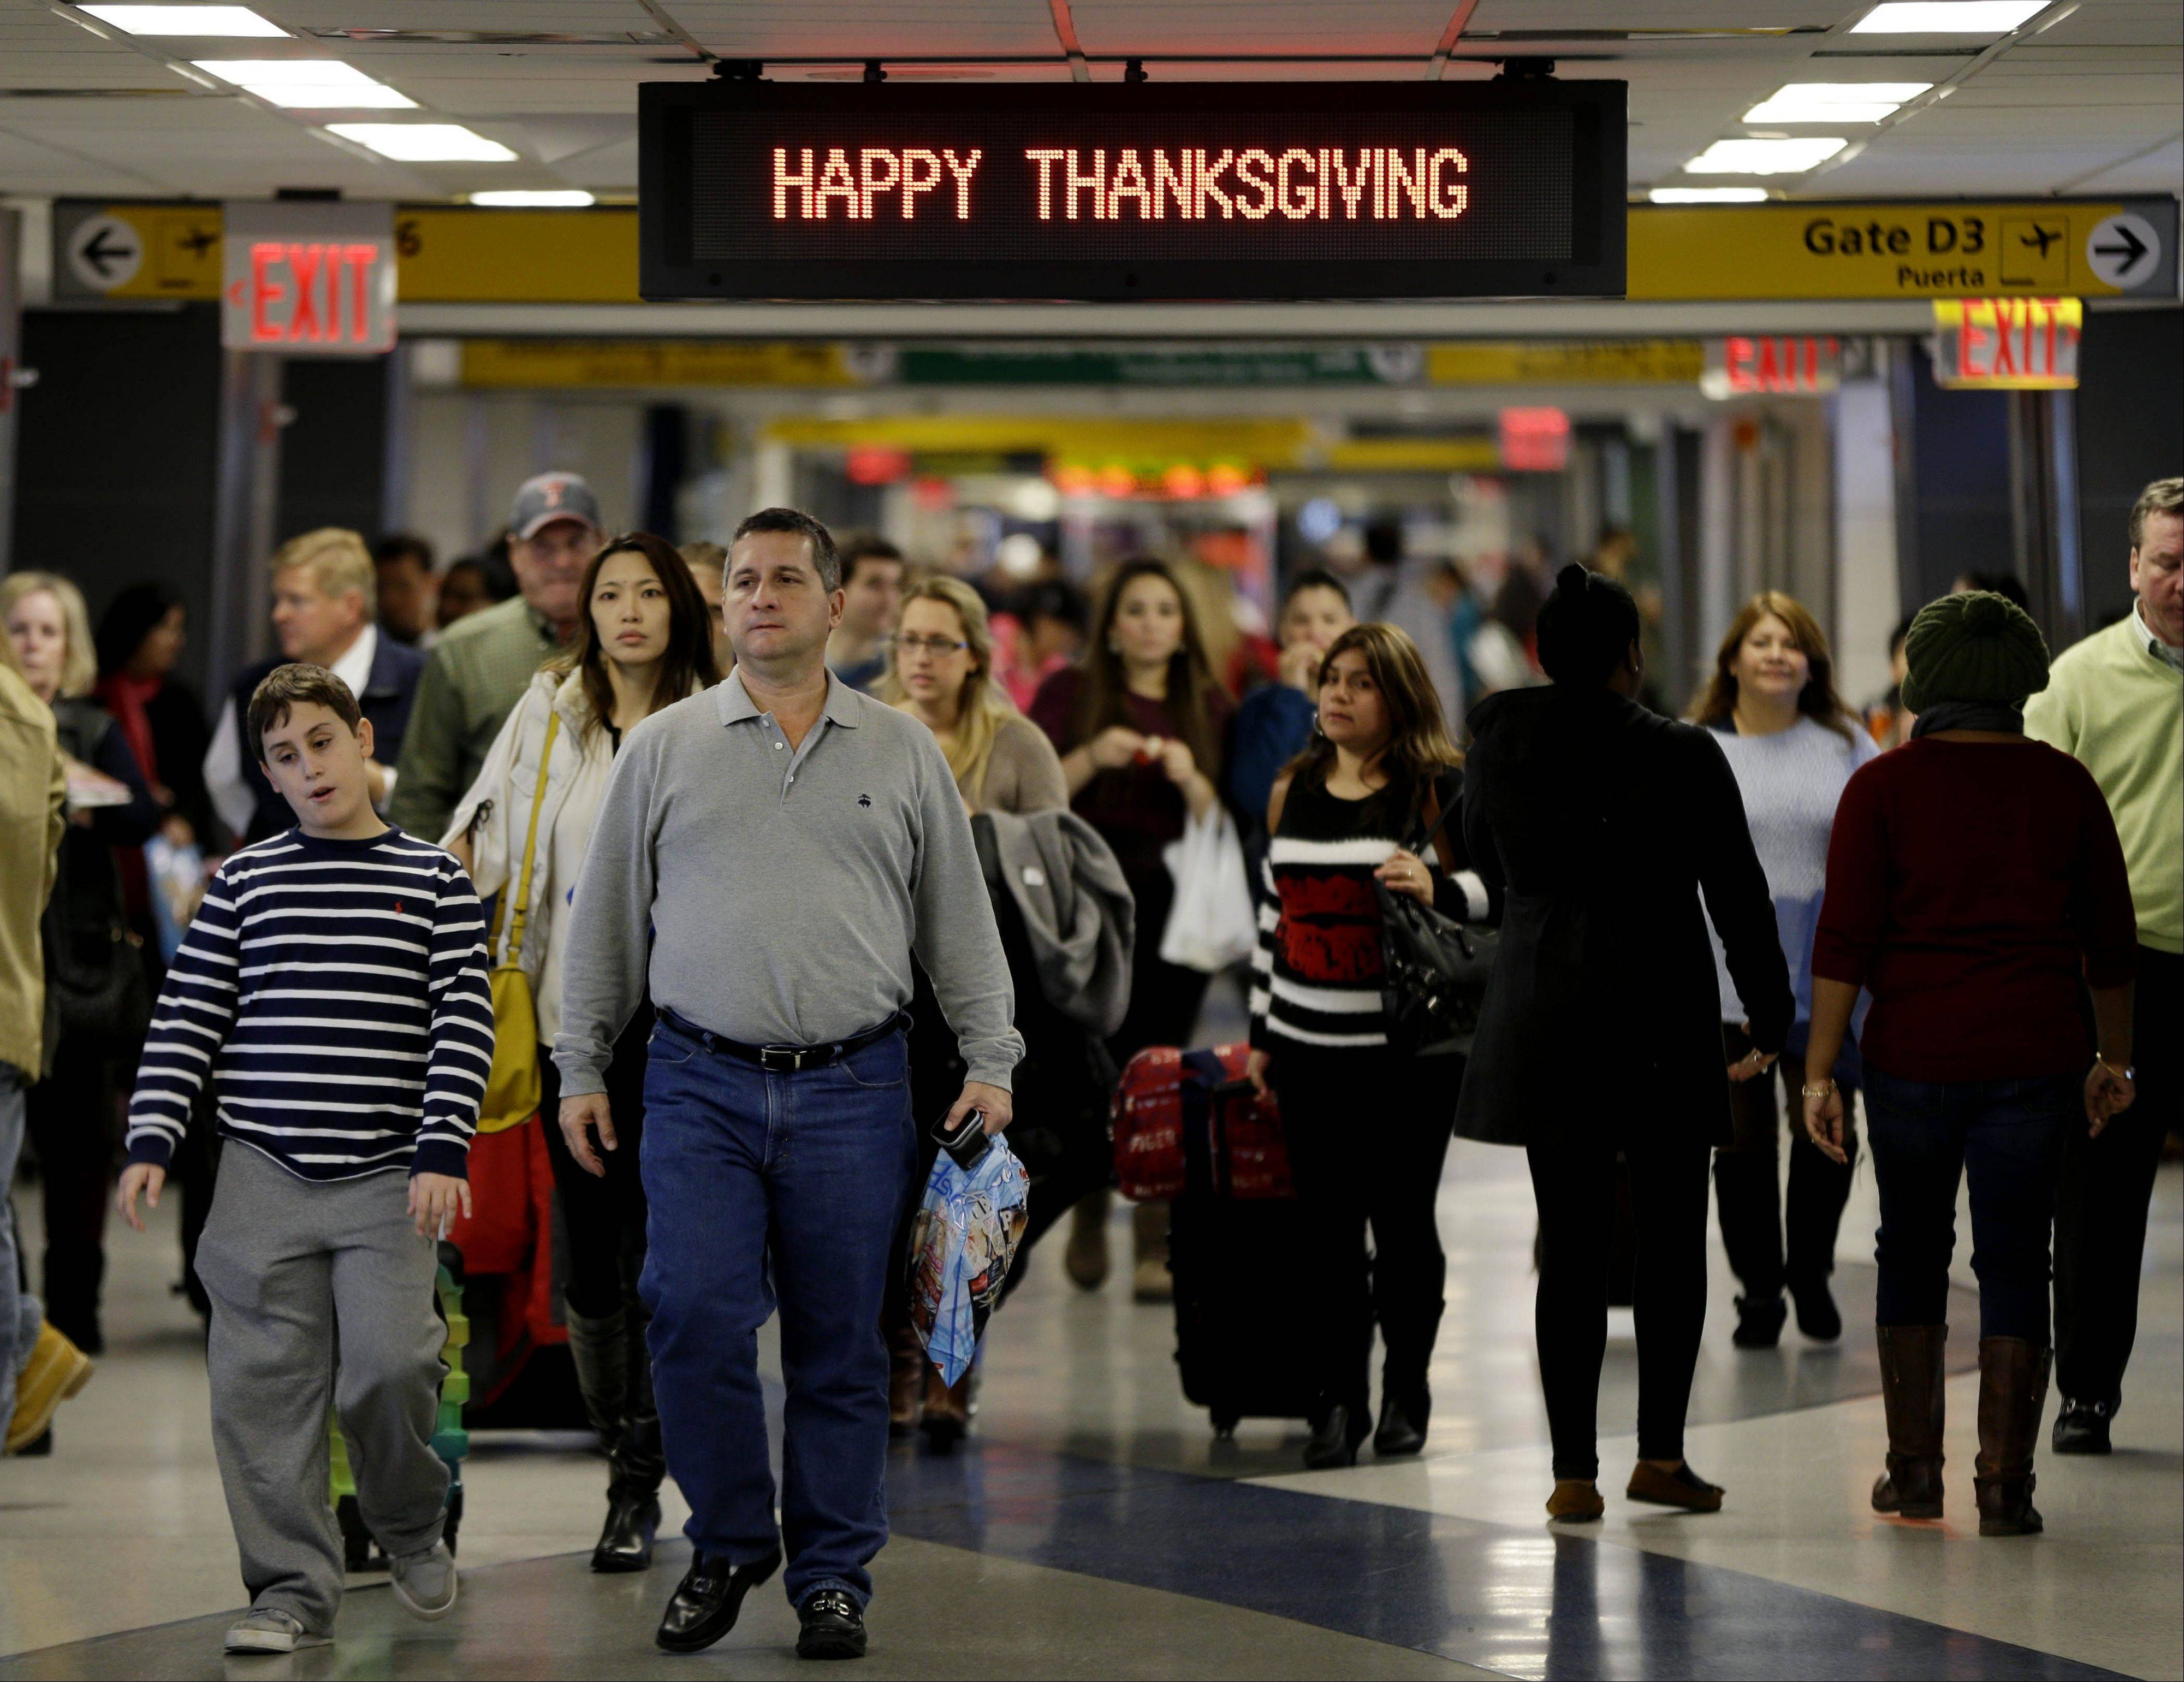 Travelers walk under a sign reading �Happy Thanksgiving� at LaGuardia Airport in New York, Tuesday, Nov. 26, 2013. A winter storm system is threatening to disrupt the plans of travelers ahead of the long Thanksgiving holiday weekend.